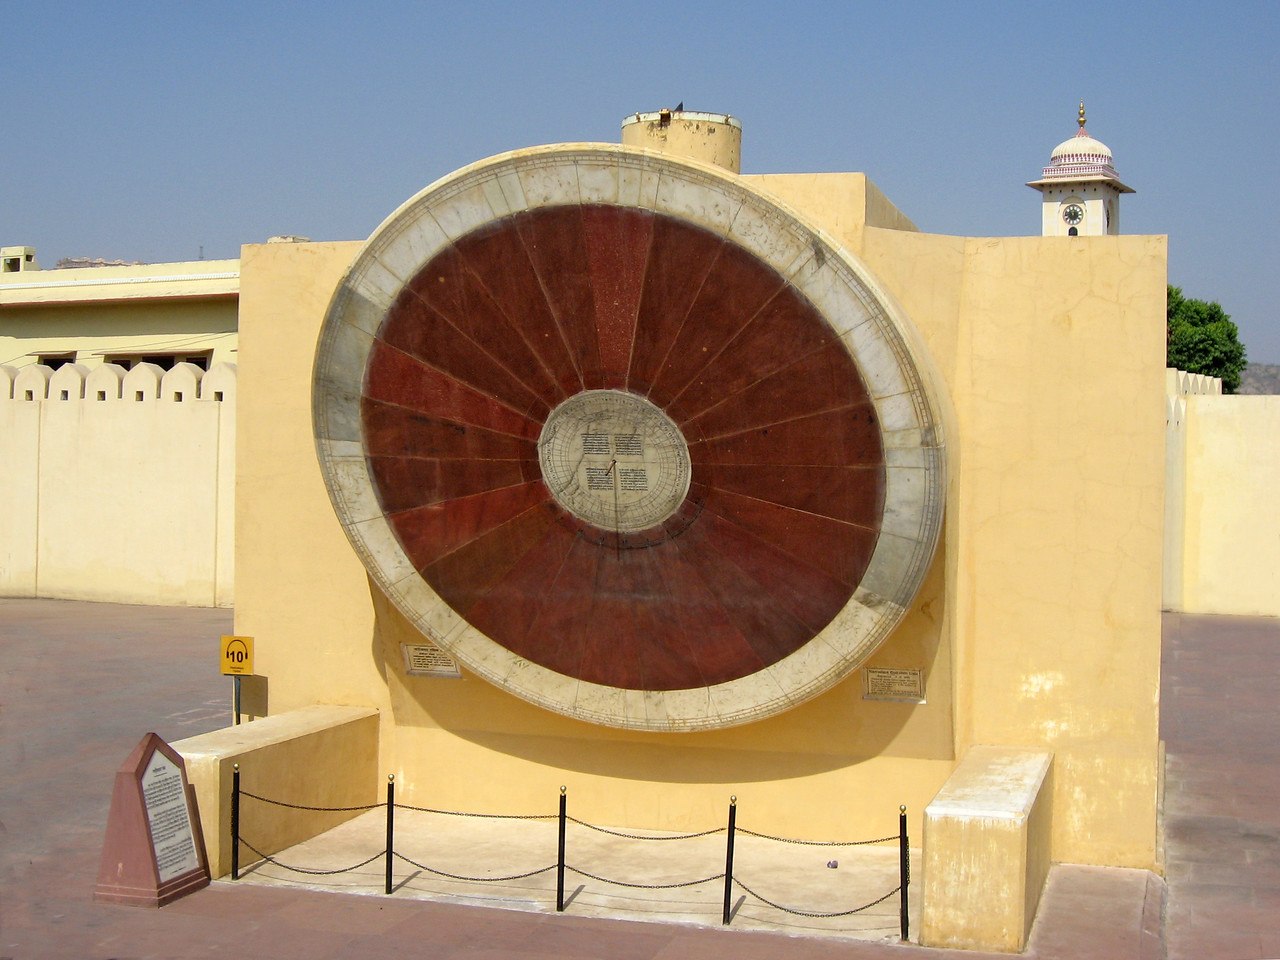 Jantar Mantar, the astronomical and astrological observatory built between 1727 and 1734.  Today, the sun dials remain remarkably accurate.